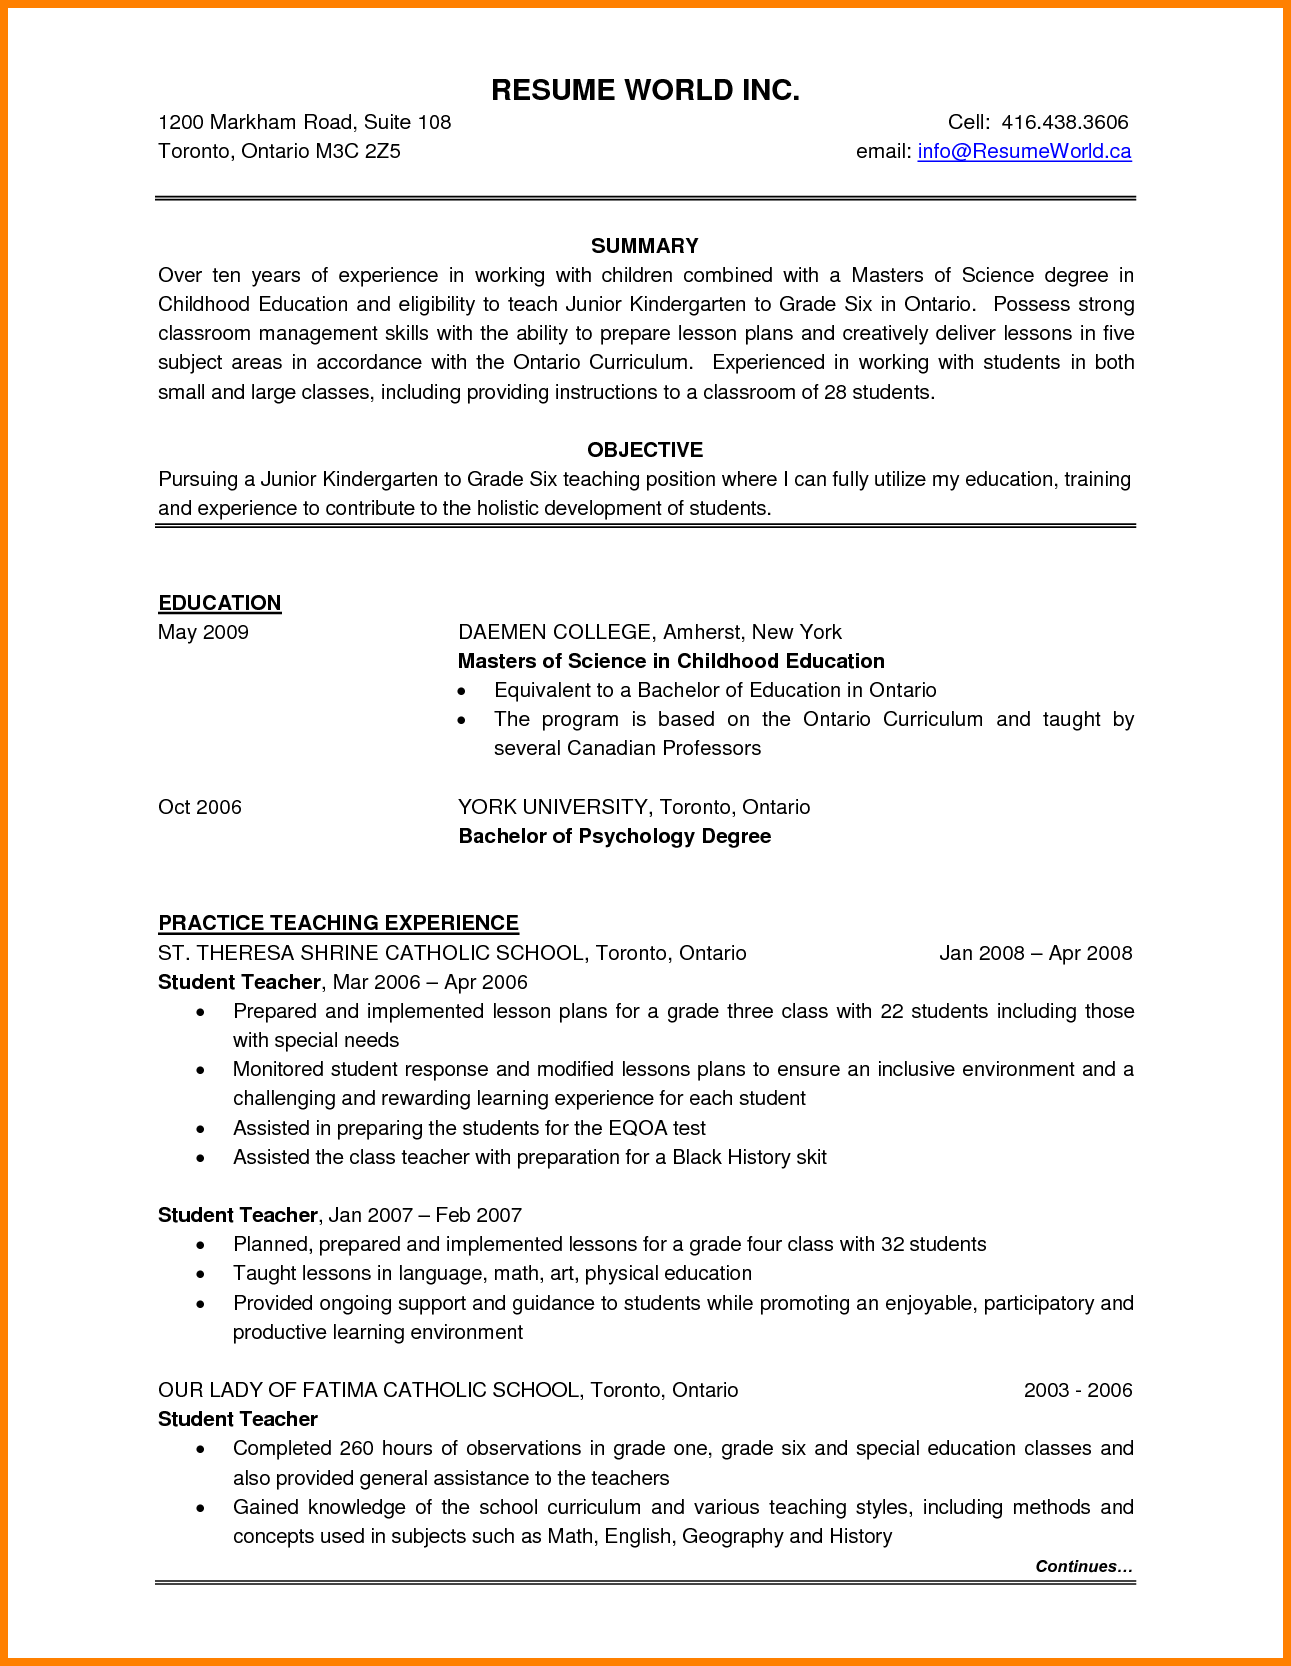 free resume templates ontario freeresumetemplates ontario resume templates